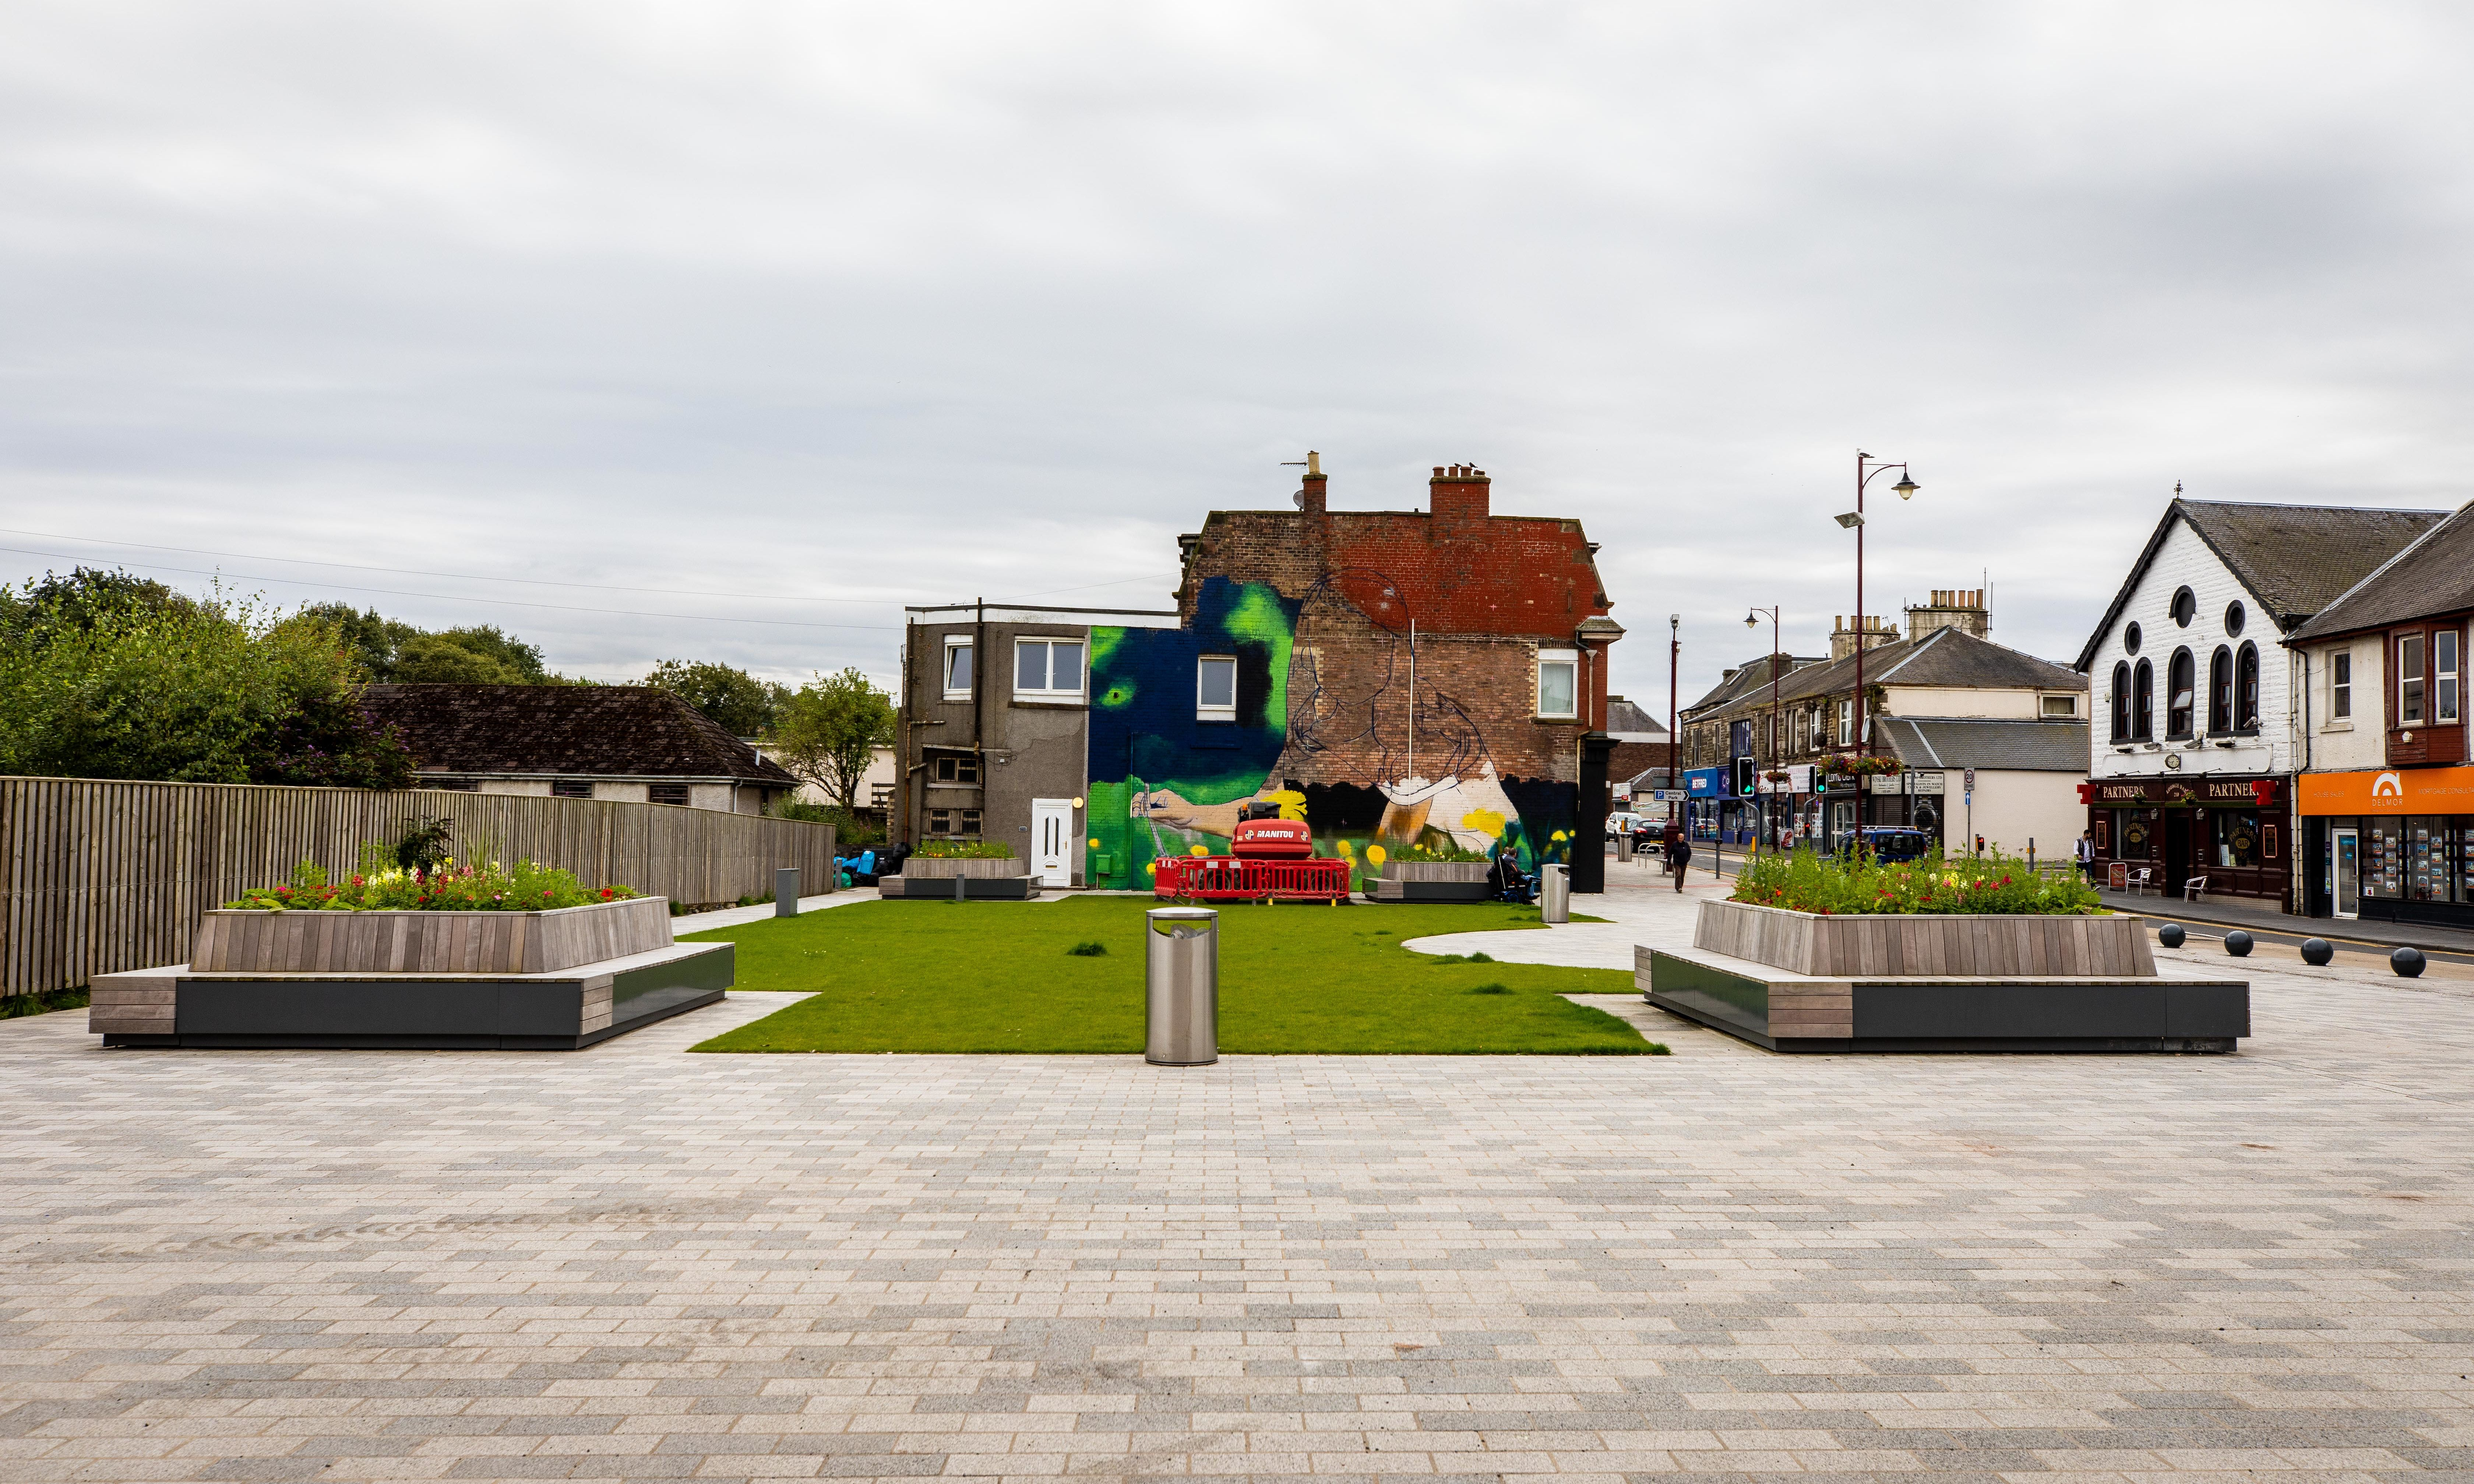 the new green square